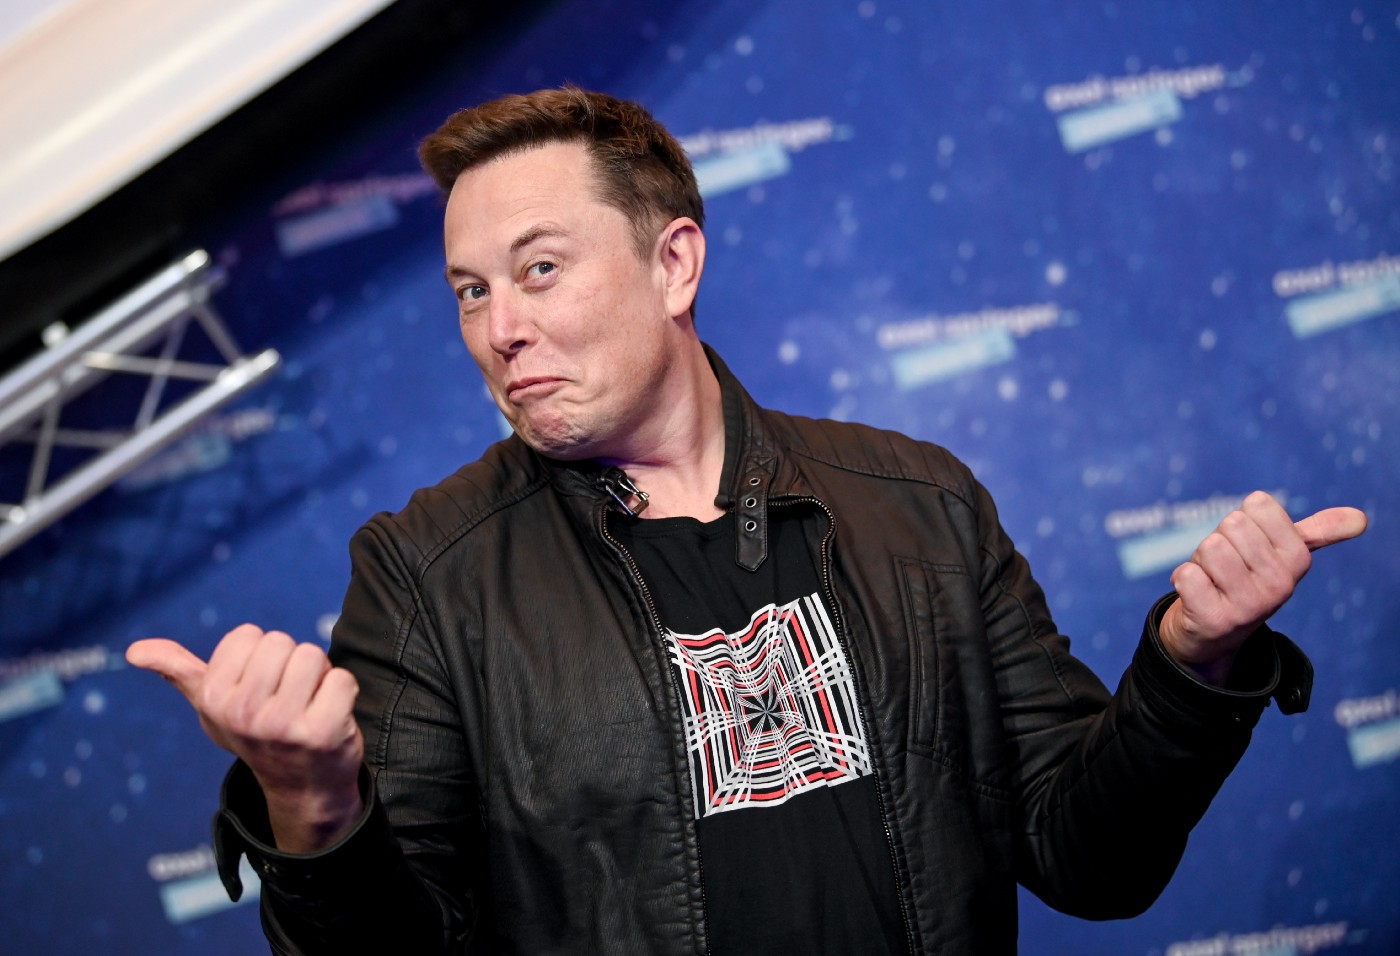 SpaceX owner and Tesla CEO Elon Musk poses on the red carpet of the Axel Springer Award 2020